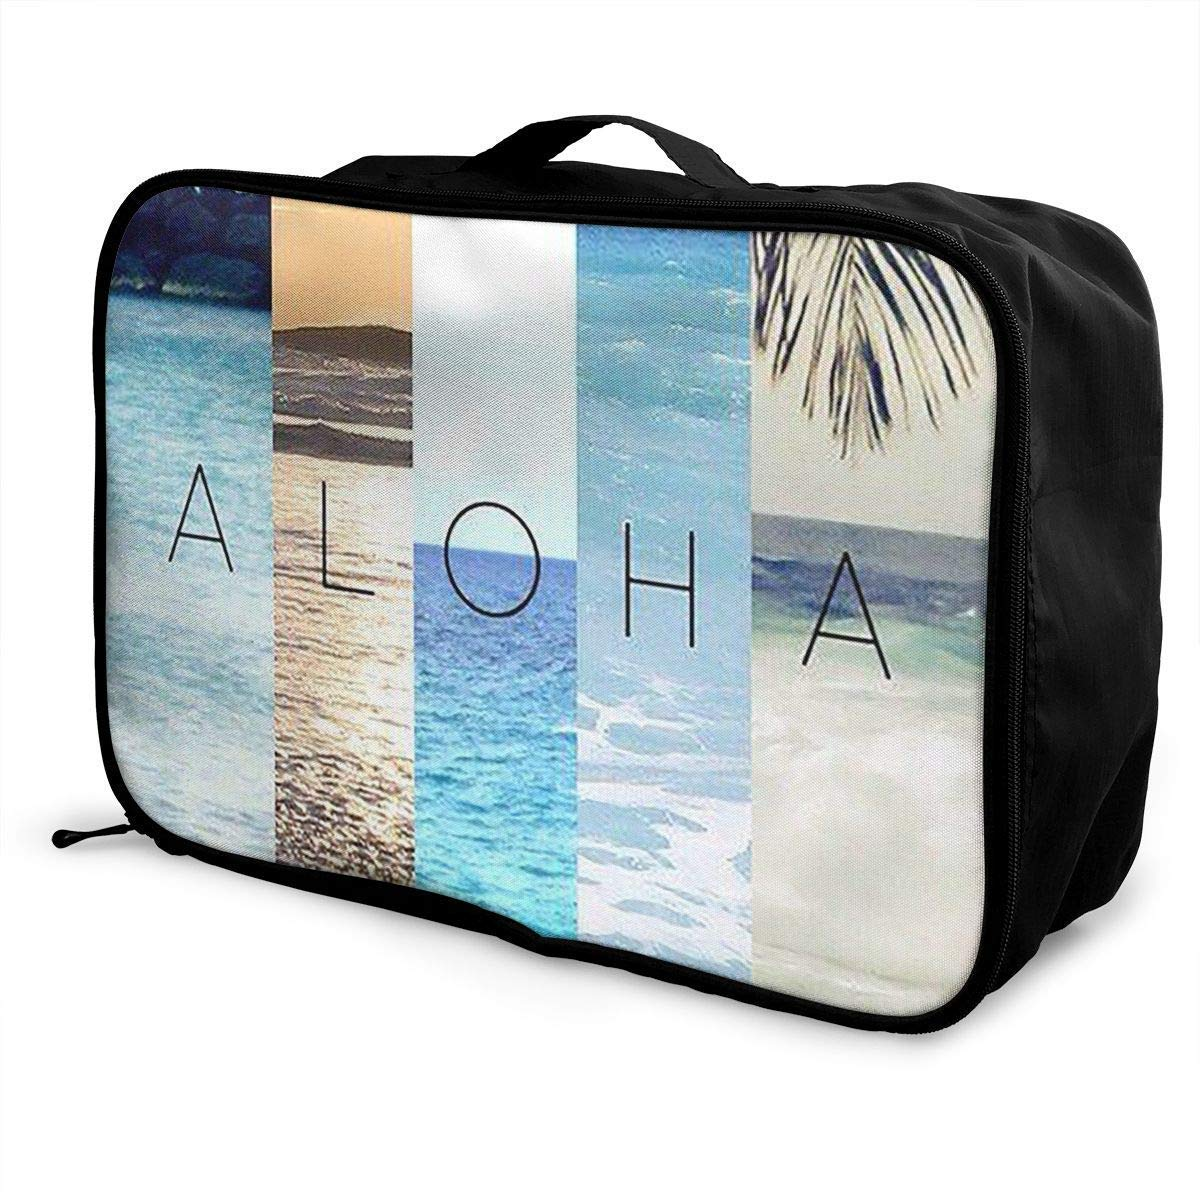 Portable Luggage Duffel Bag Aloha Summer Travel Bags Carry-on in Trolley Handle JTRVW Luggage Bags for Travel